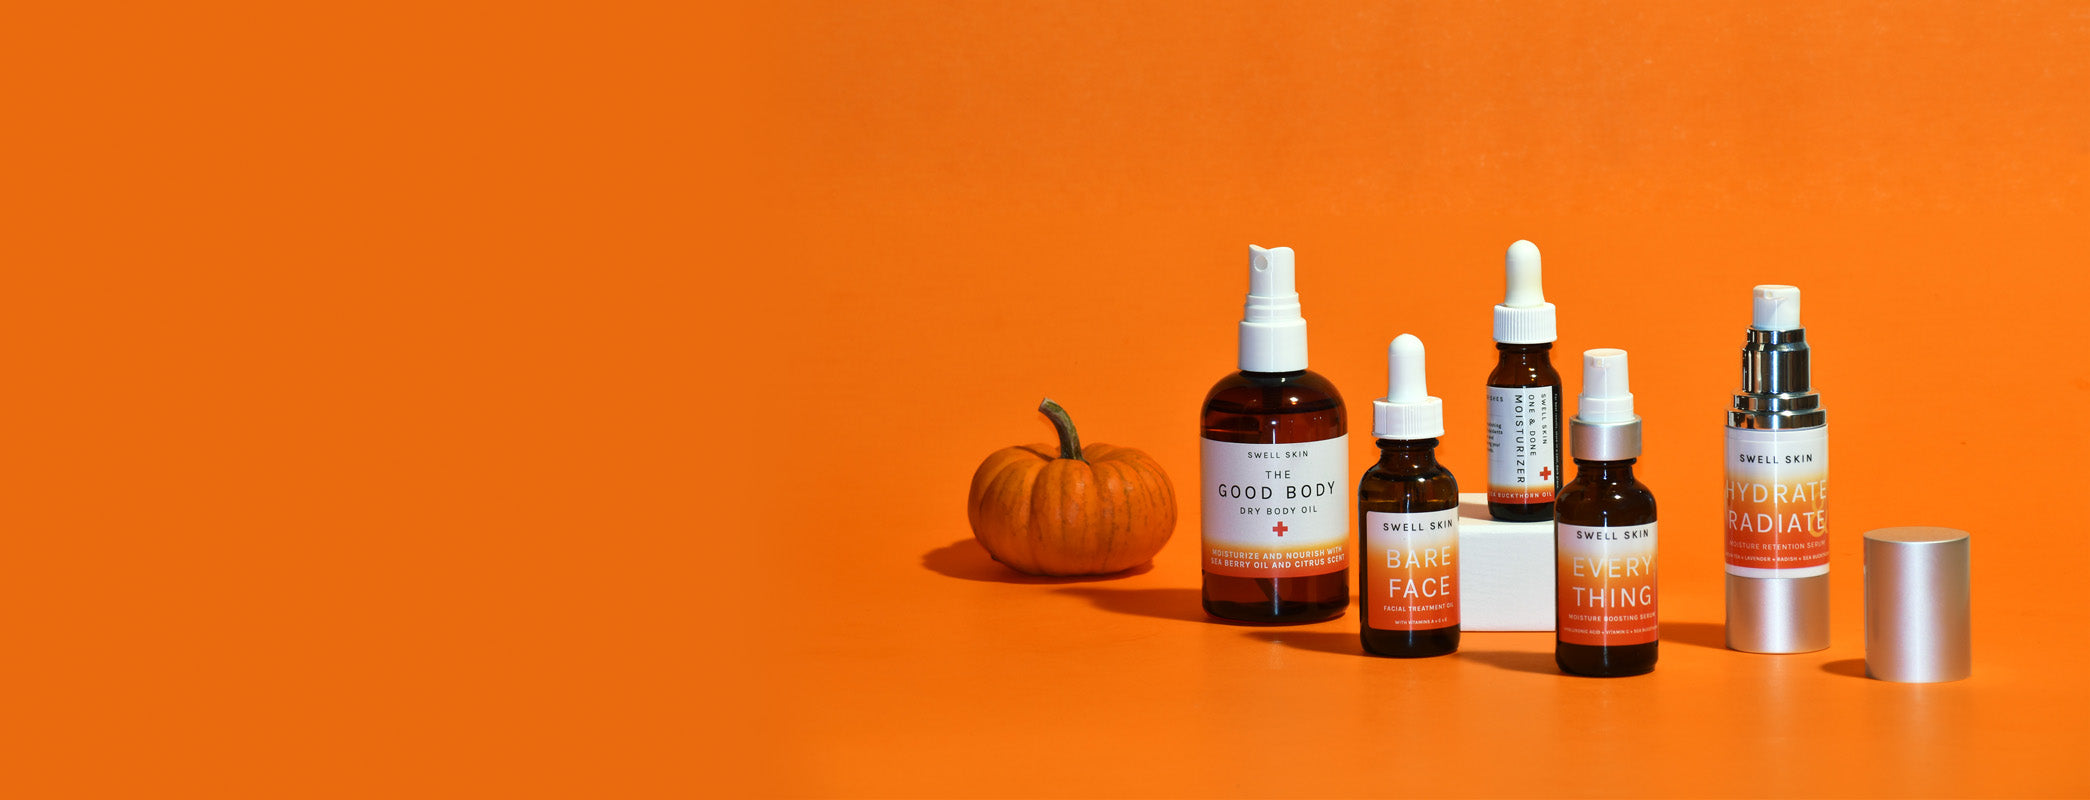 SWELL SKIN - 20% OFF Serums & Oils Weekend Sale 10/12 thru 10/13/2019